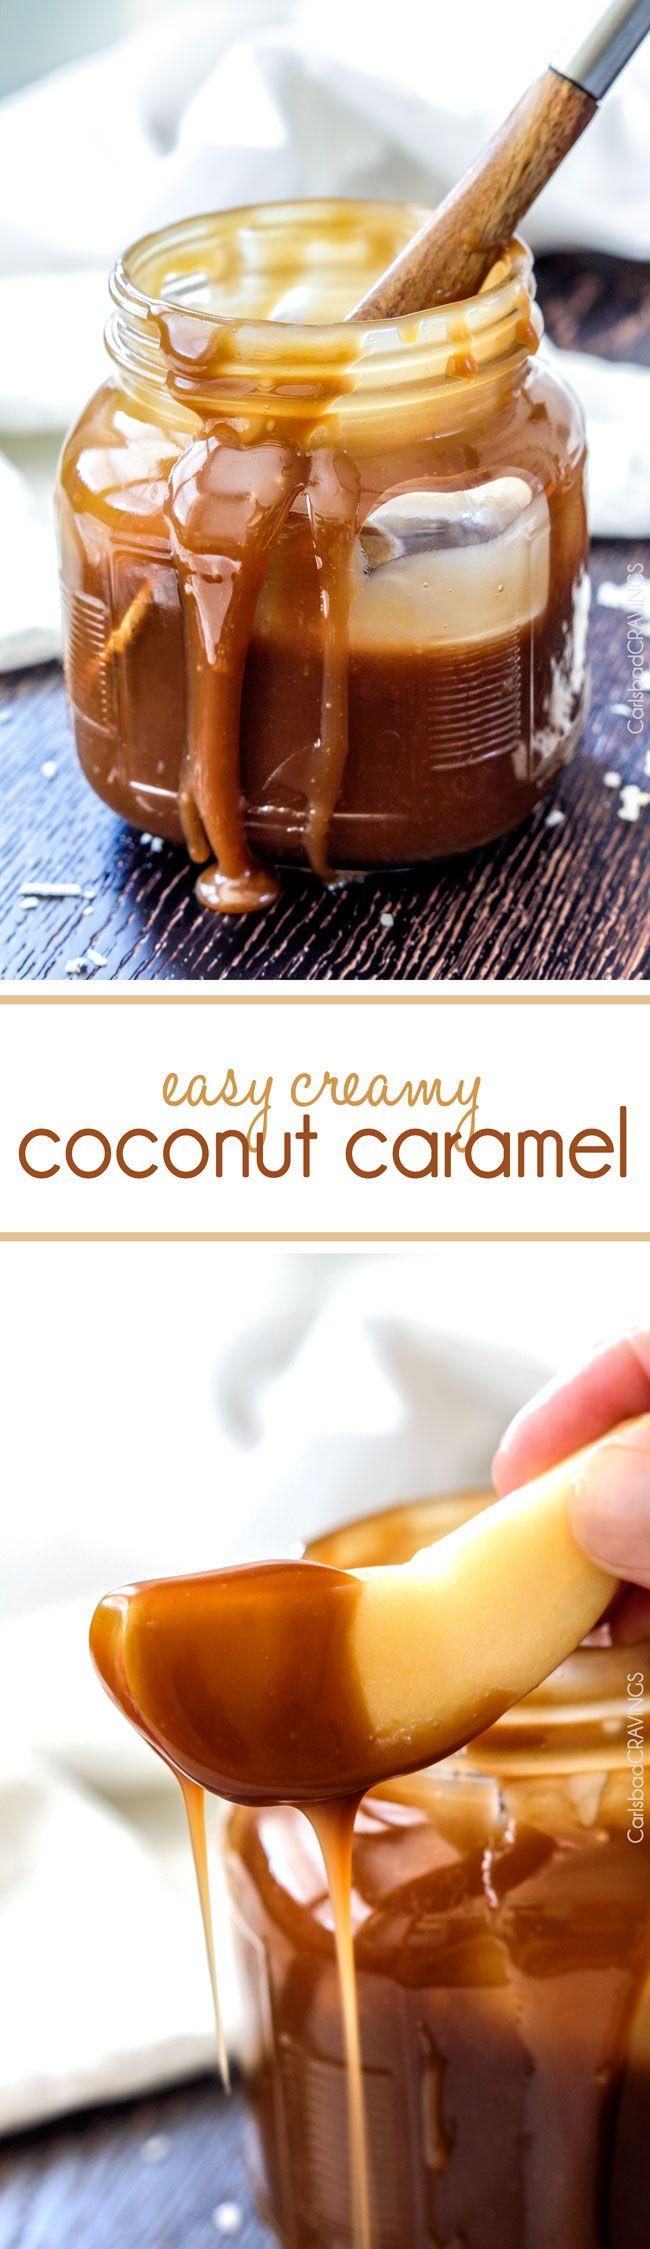 FOOL PROOF Easy Creamy Coconut Caramel Sauce - Rich, creamy, buttery, sweet with an undertone of irresistible coconut and 1,000 TIMES BETTER than any store bought caramel. Makes everything better! via @carlsbadcraving